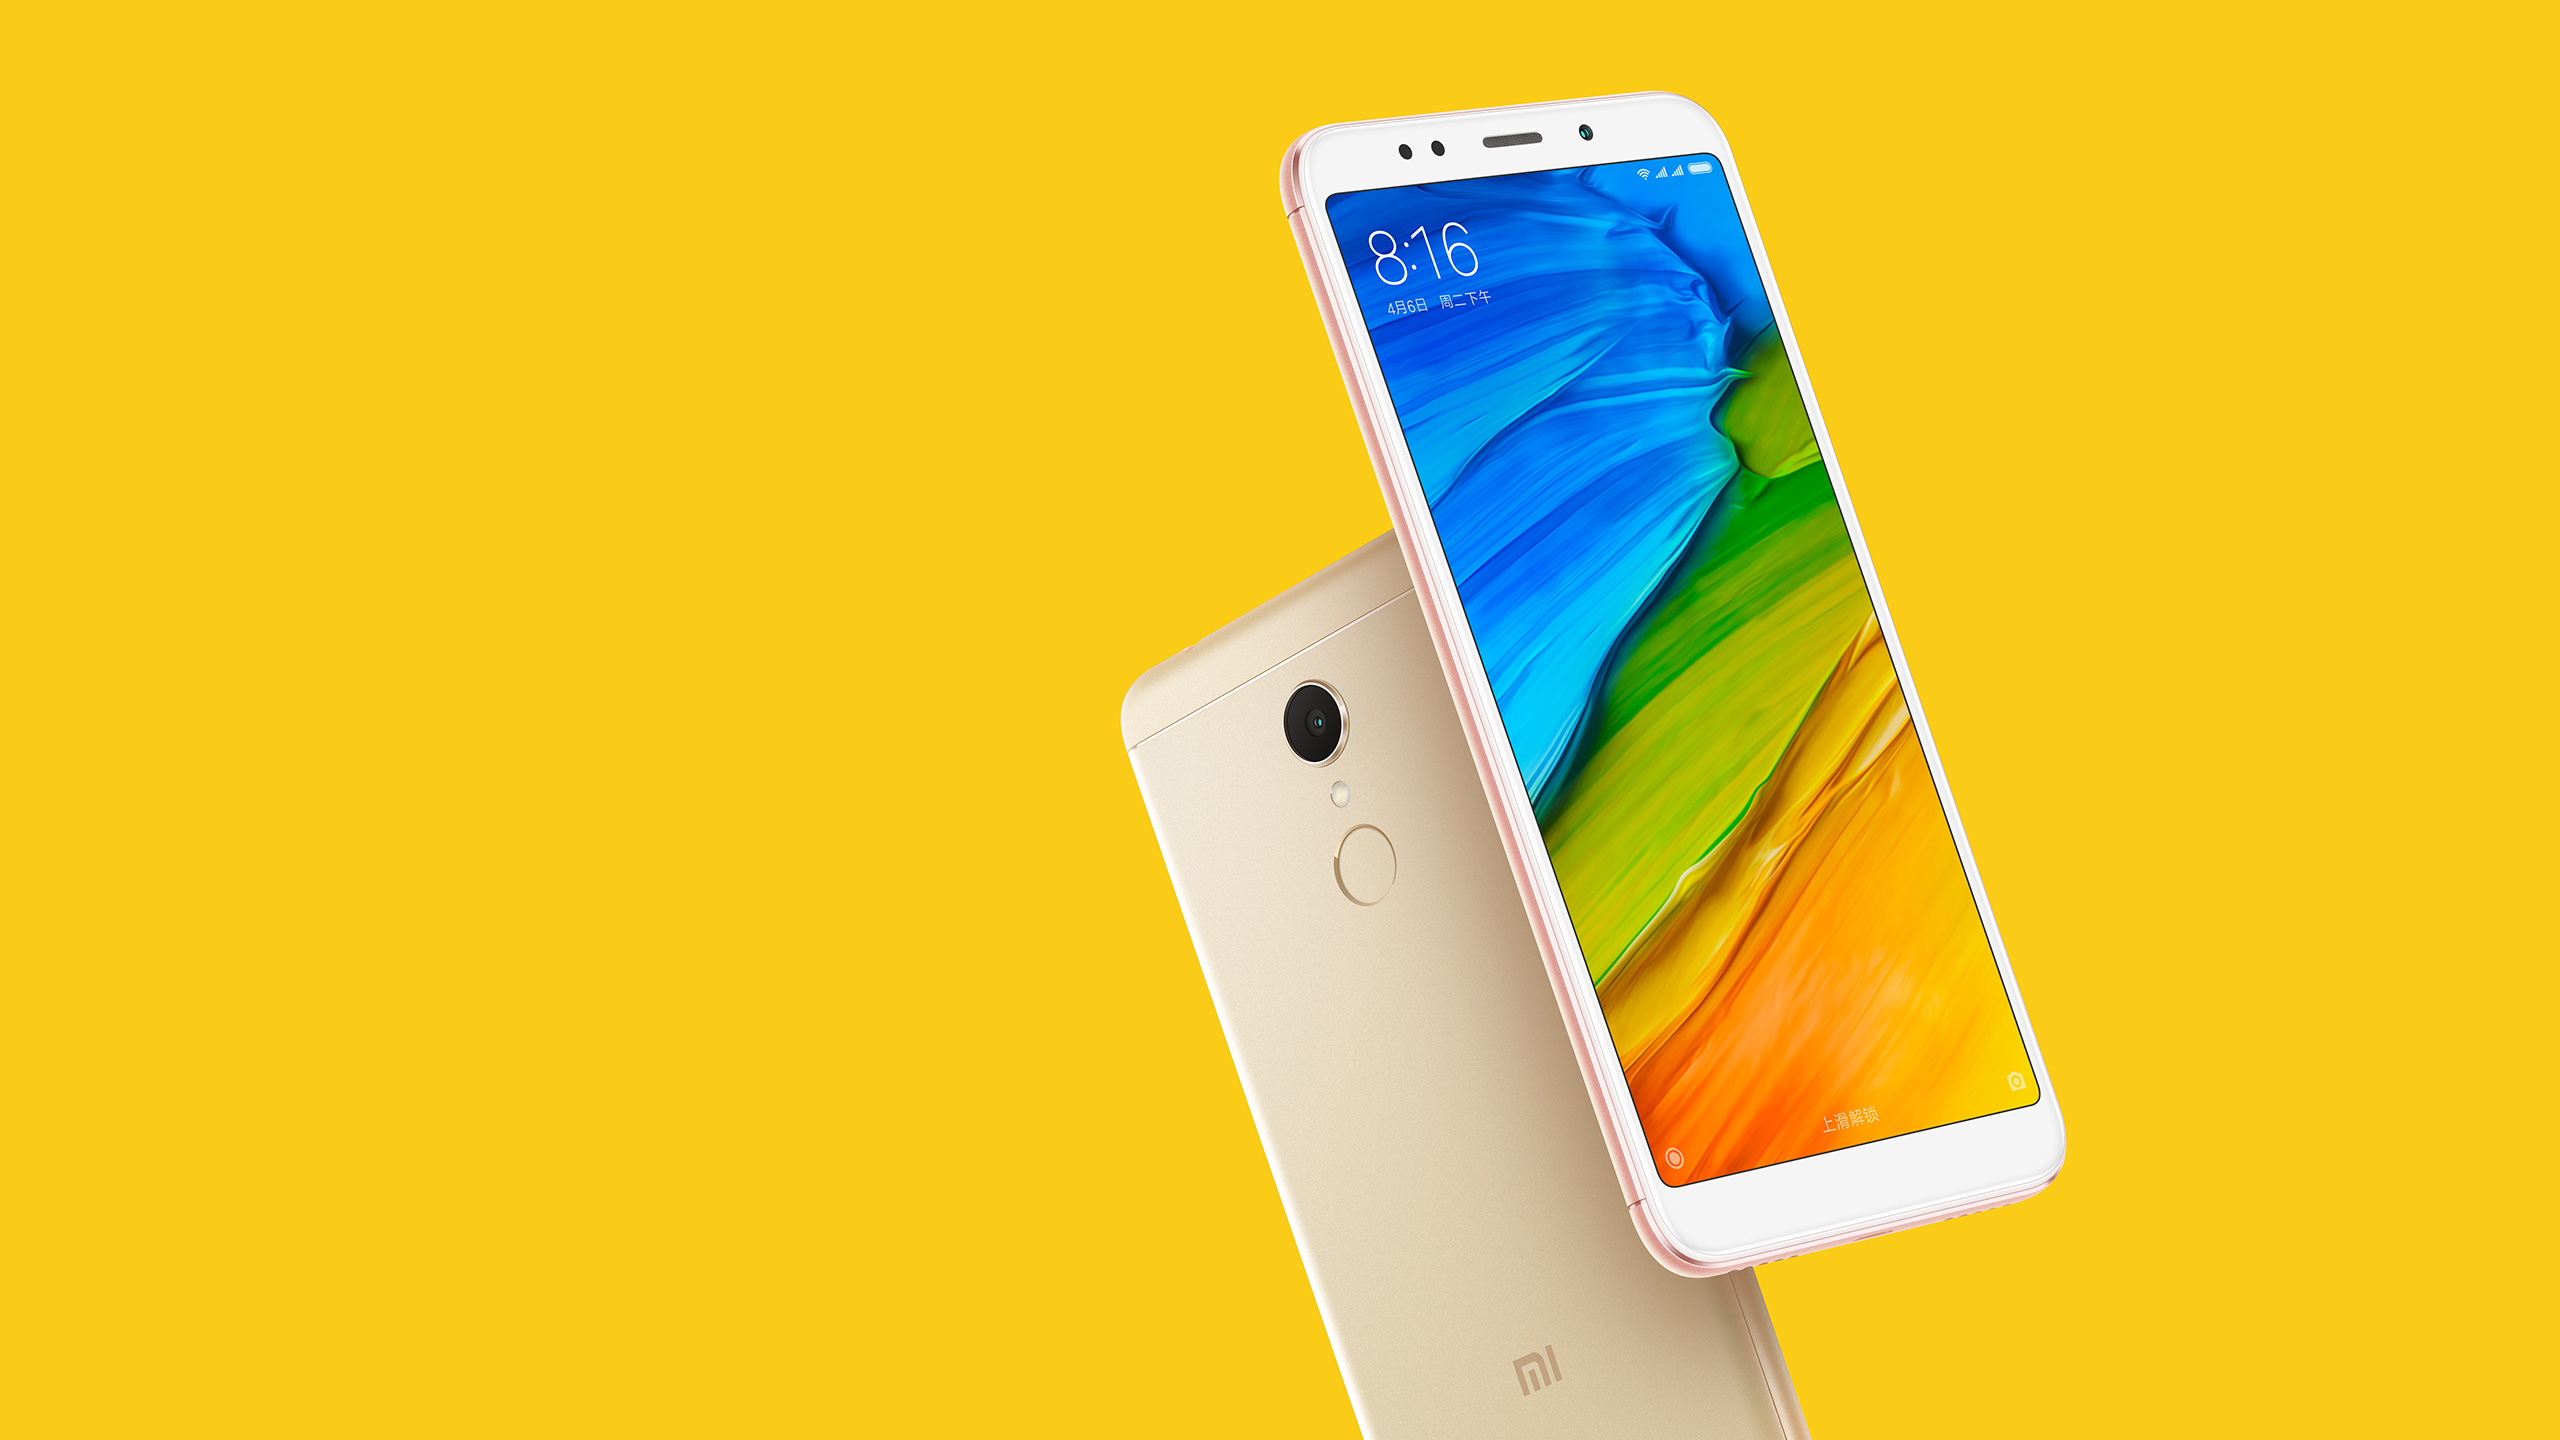 Redmi 5 Xiaomi 6 Gold 3 32gb 3gb Msp 17499